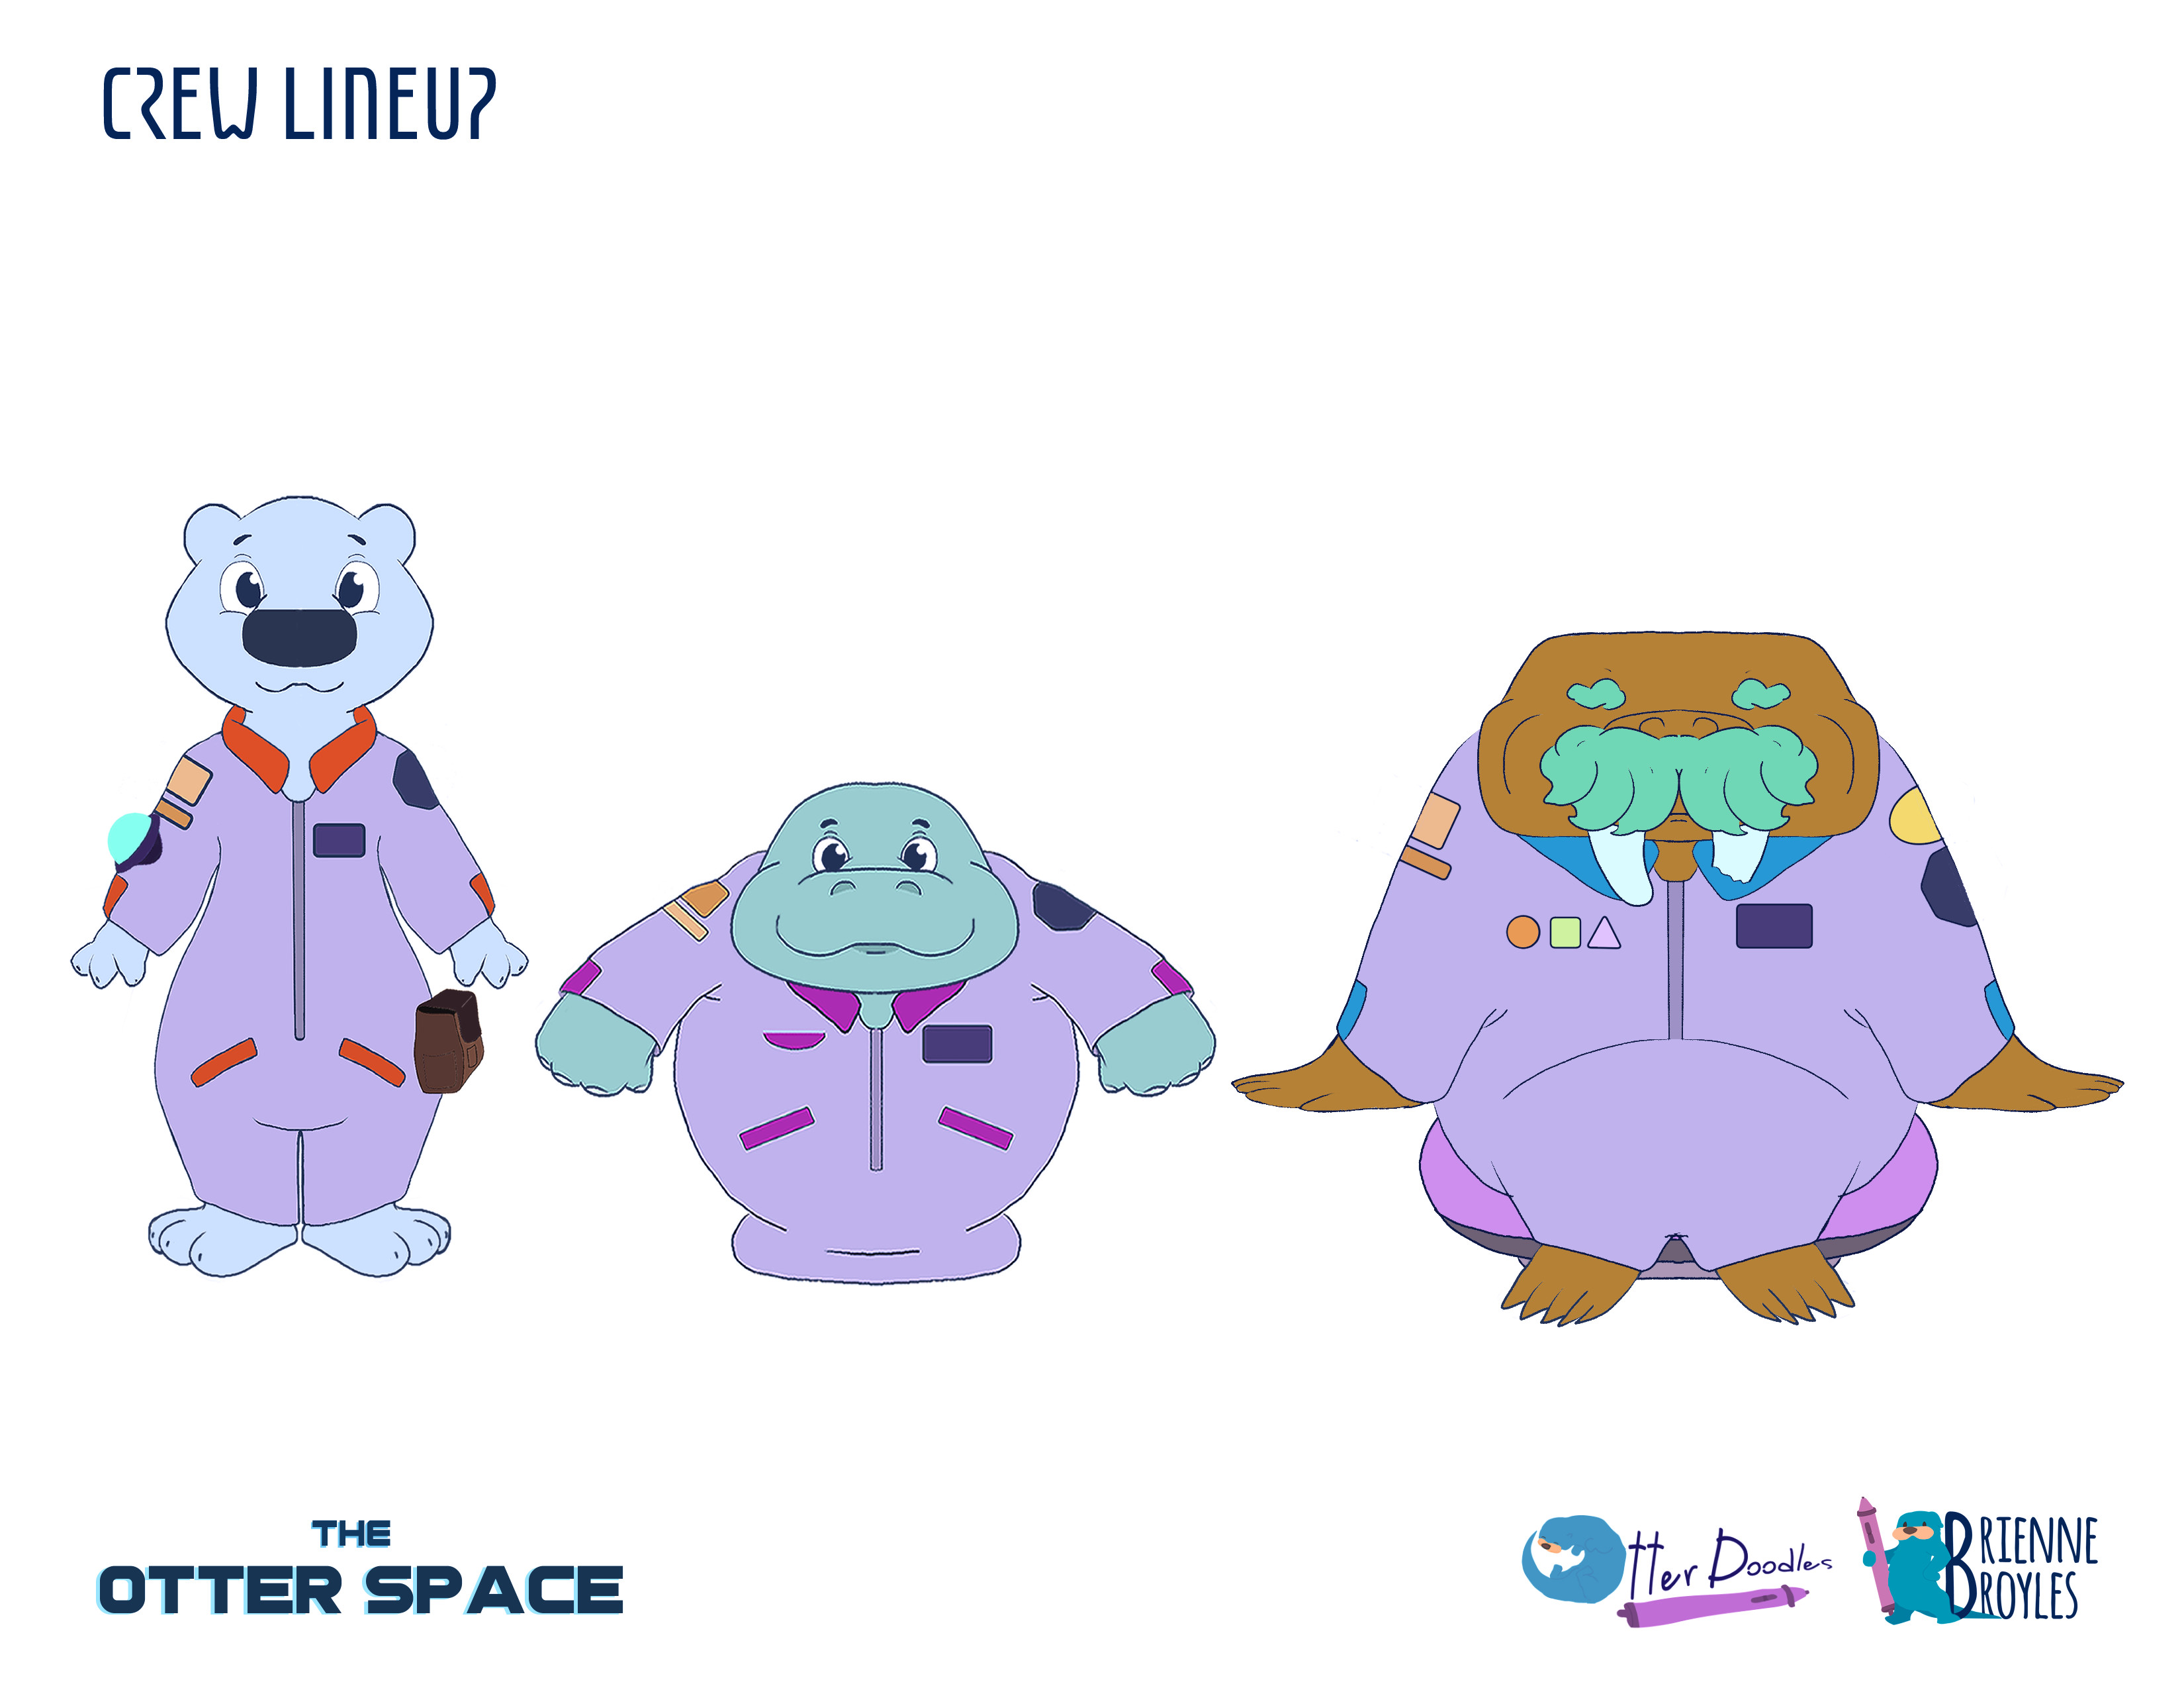 The Otter Space: Crew Lineup